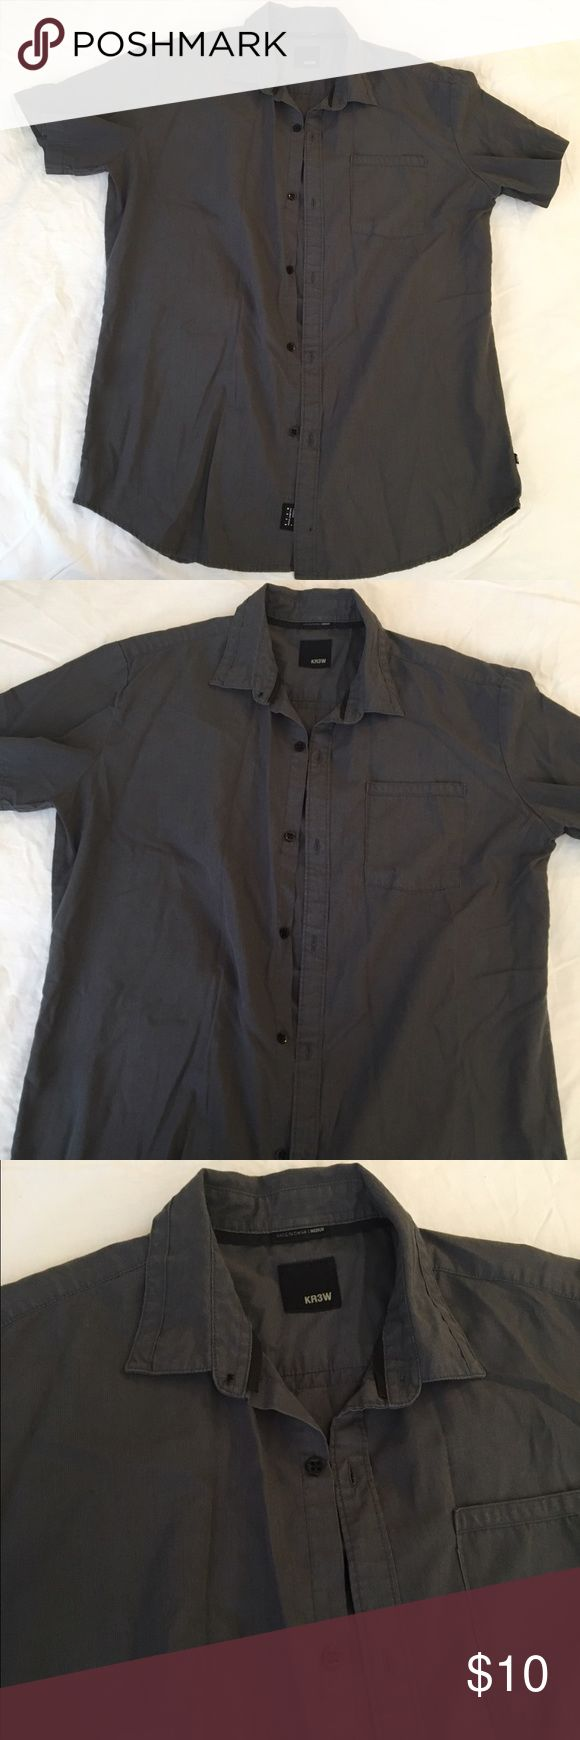 Mens Krew Short Slv Button-Up Size Large, as is in photo. Color is almost black, like a gun-metal charcoal/black. Great condition. Has a small little smudge/discoloration in corner of right sleeve-photographed(last photo). Krew Tops Button Down Shirts